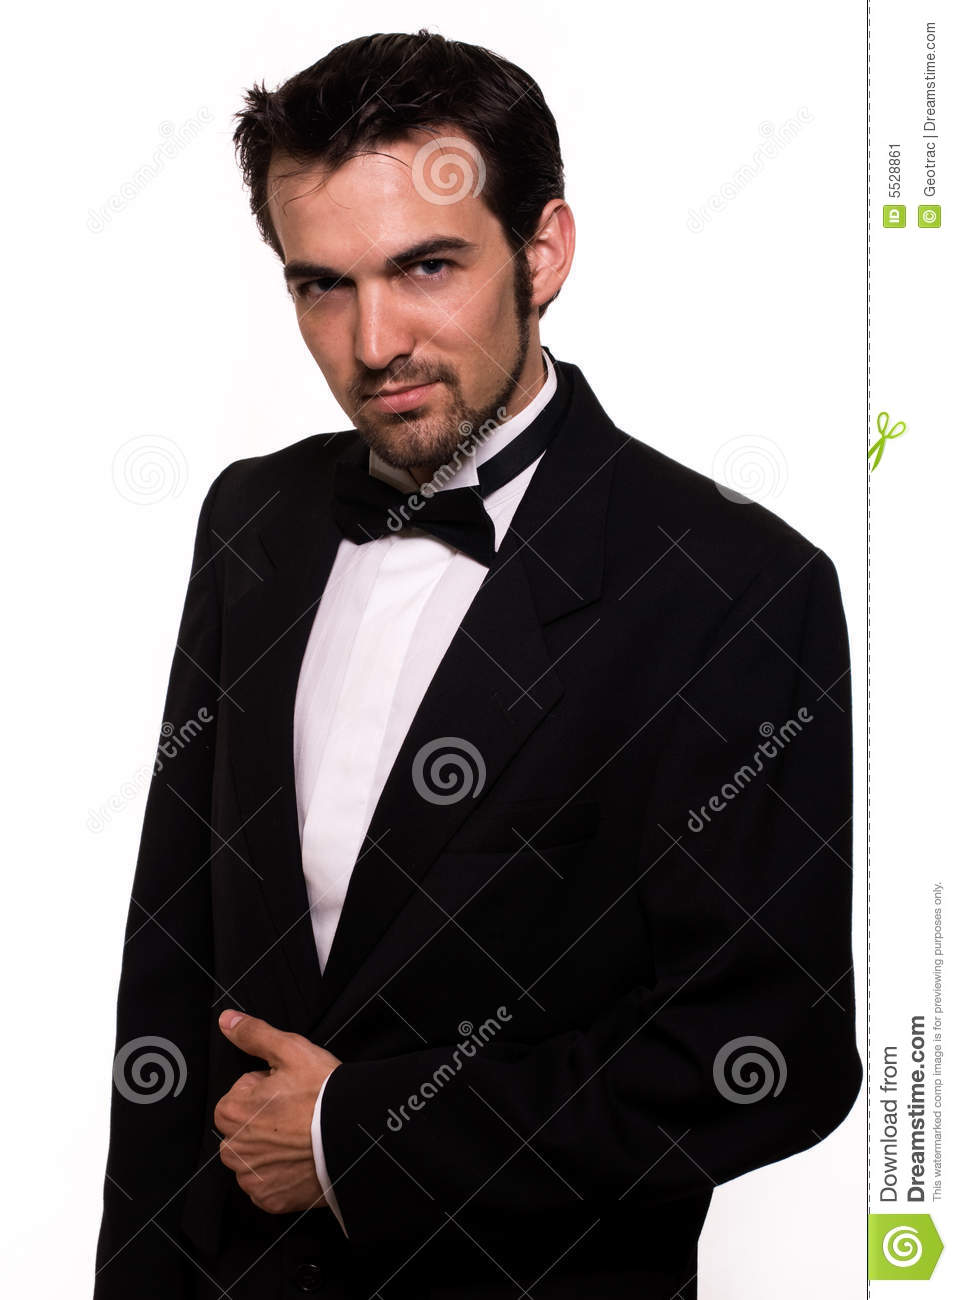 Handsome Man In Tuxedo Stock Image - Image: 5528861